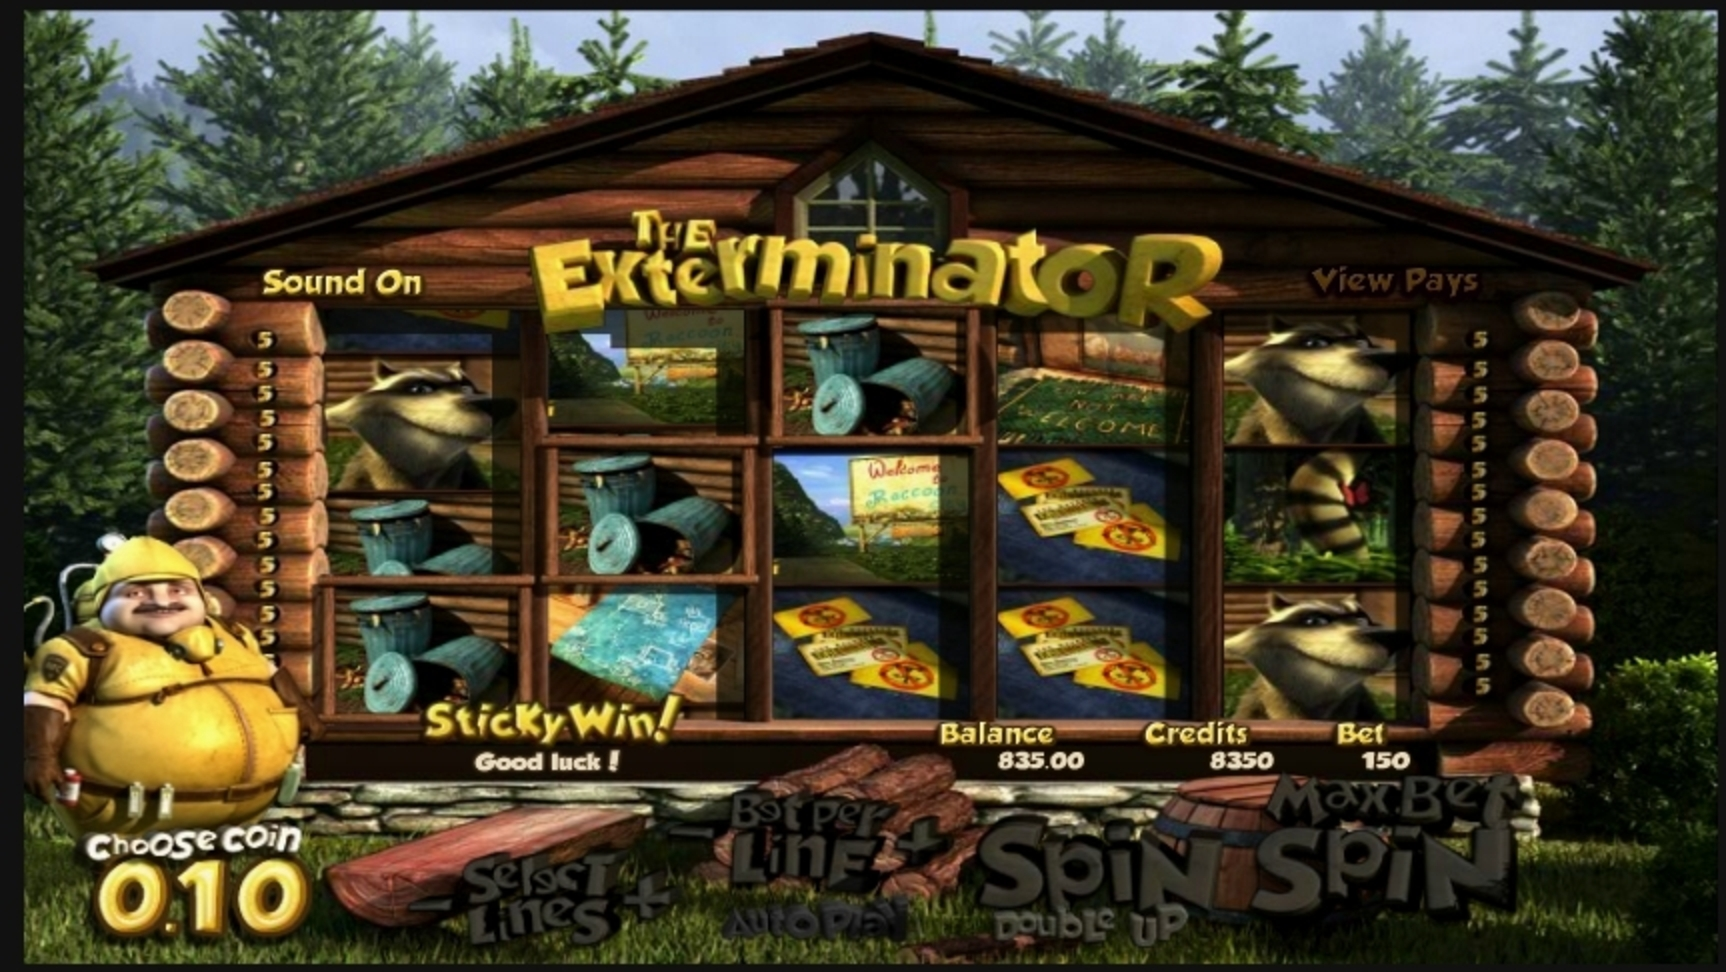 Win Money in The Exterminator Free Slot Game by Betsoft